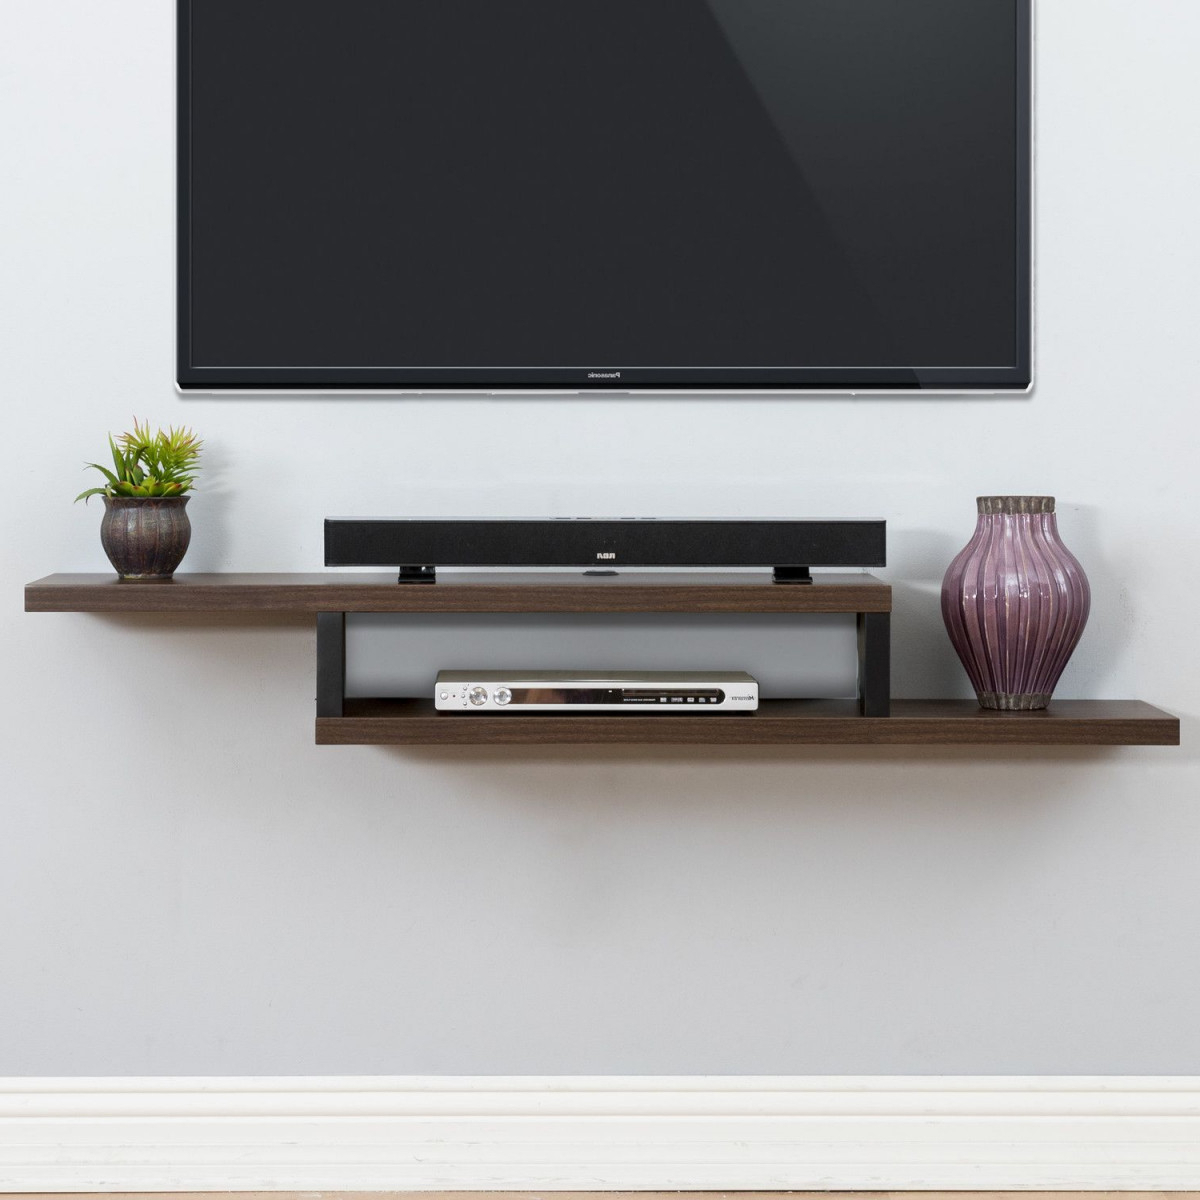 Most Popular Easel Tv Stand Belle How To Hide Tv Cables Chatelaine Tv Mounting Pertaining To Easel Tv Stands For Flat Screens (Gallery 18 of 20)